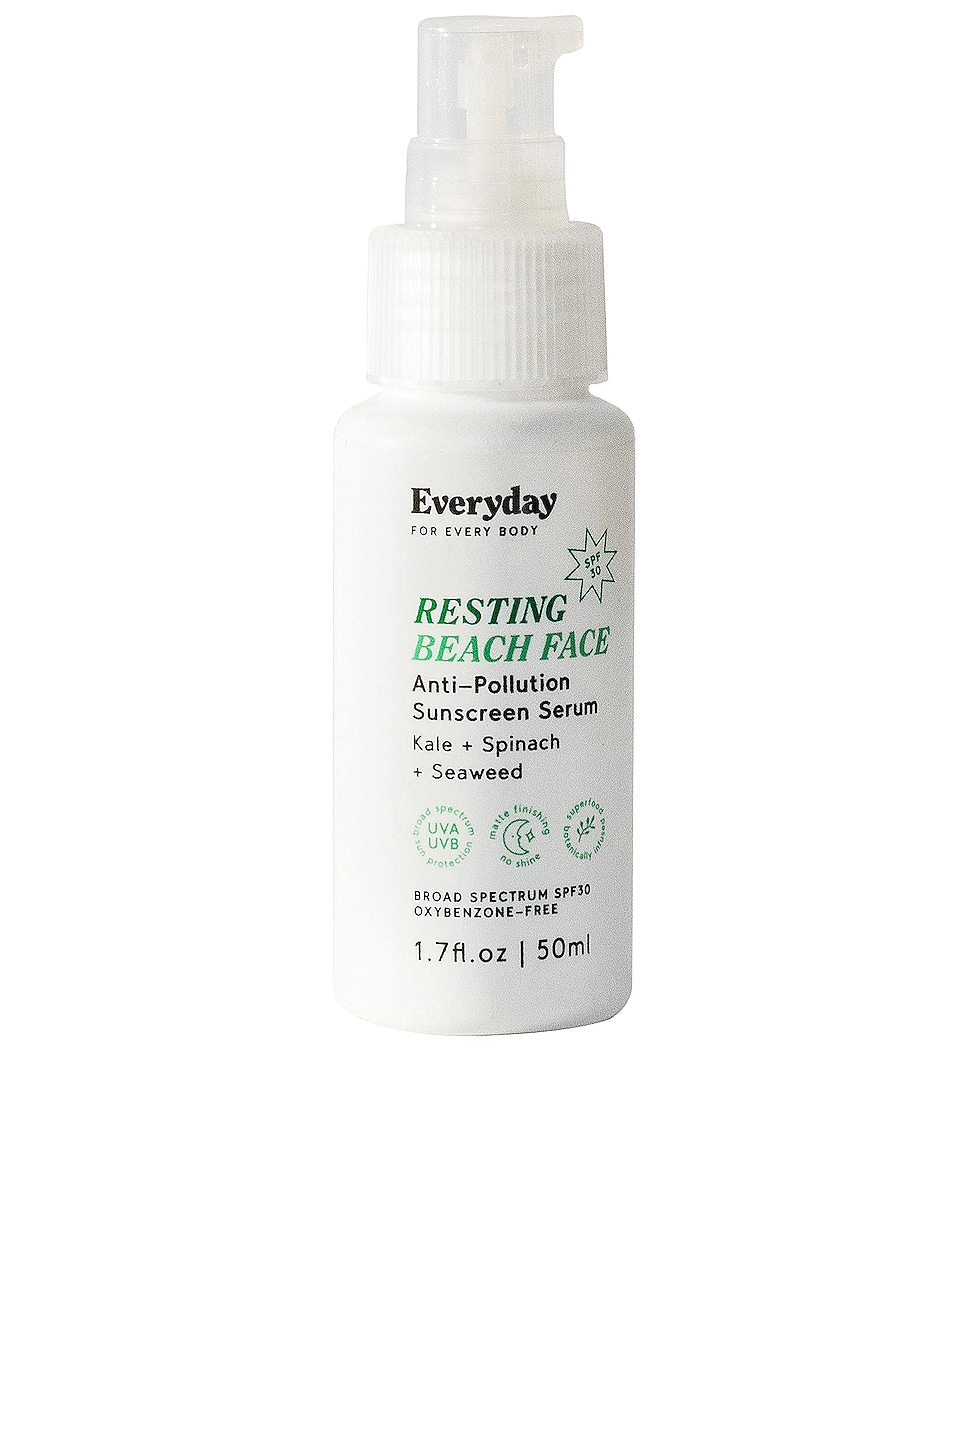 Everyday - Resting Beach Face SPF30 Anti-Pollution Sunscreen Serum